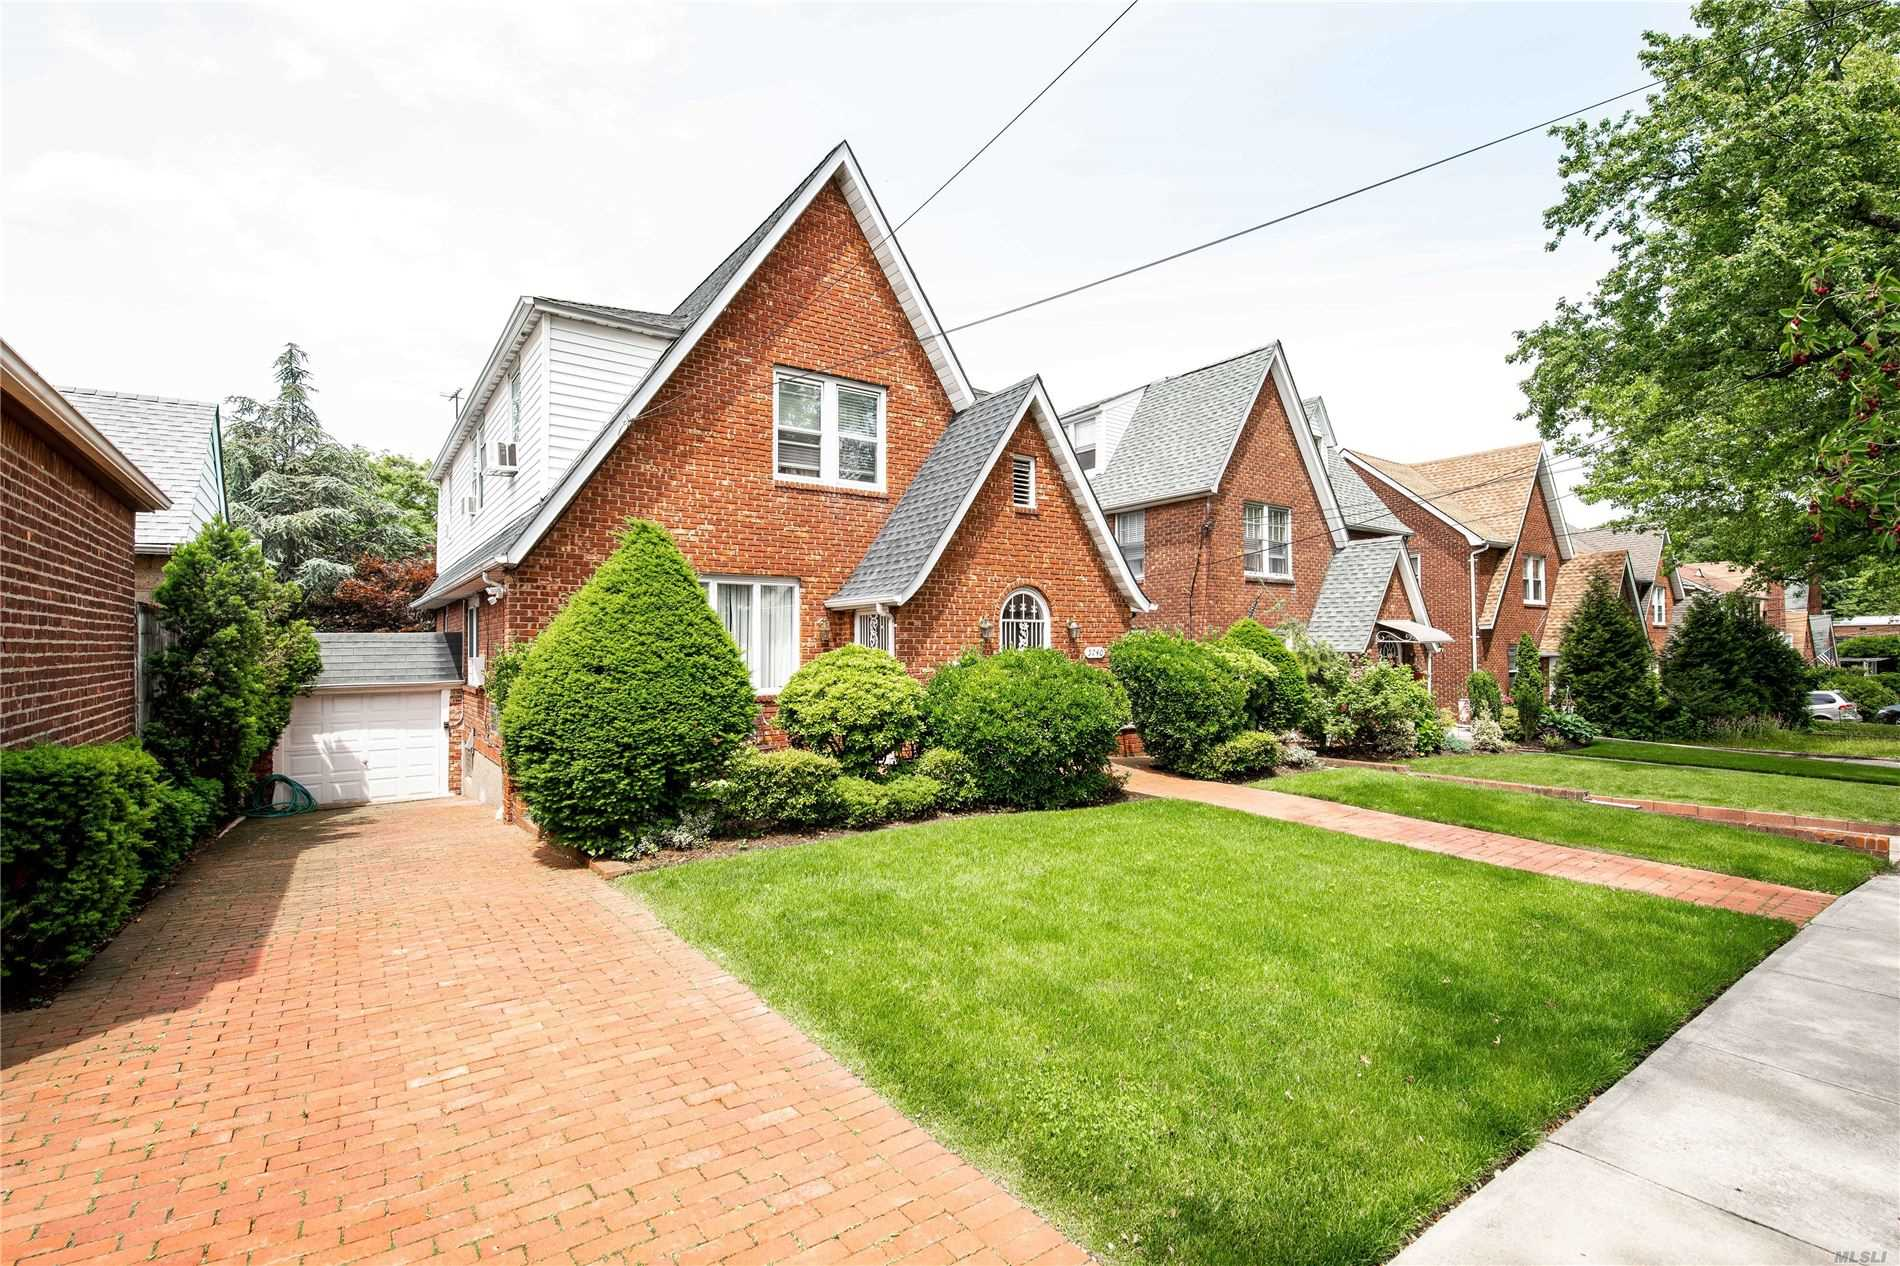 Property for sale at 57-40 162nd Street, Flushing NY 11365, Flushing,  New York 11365